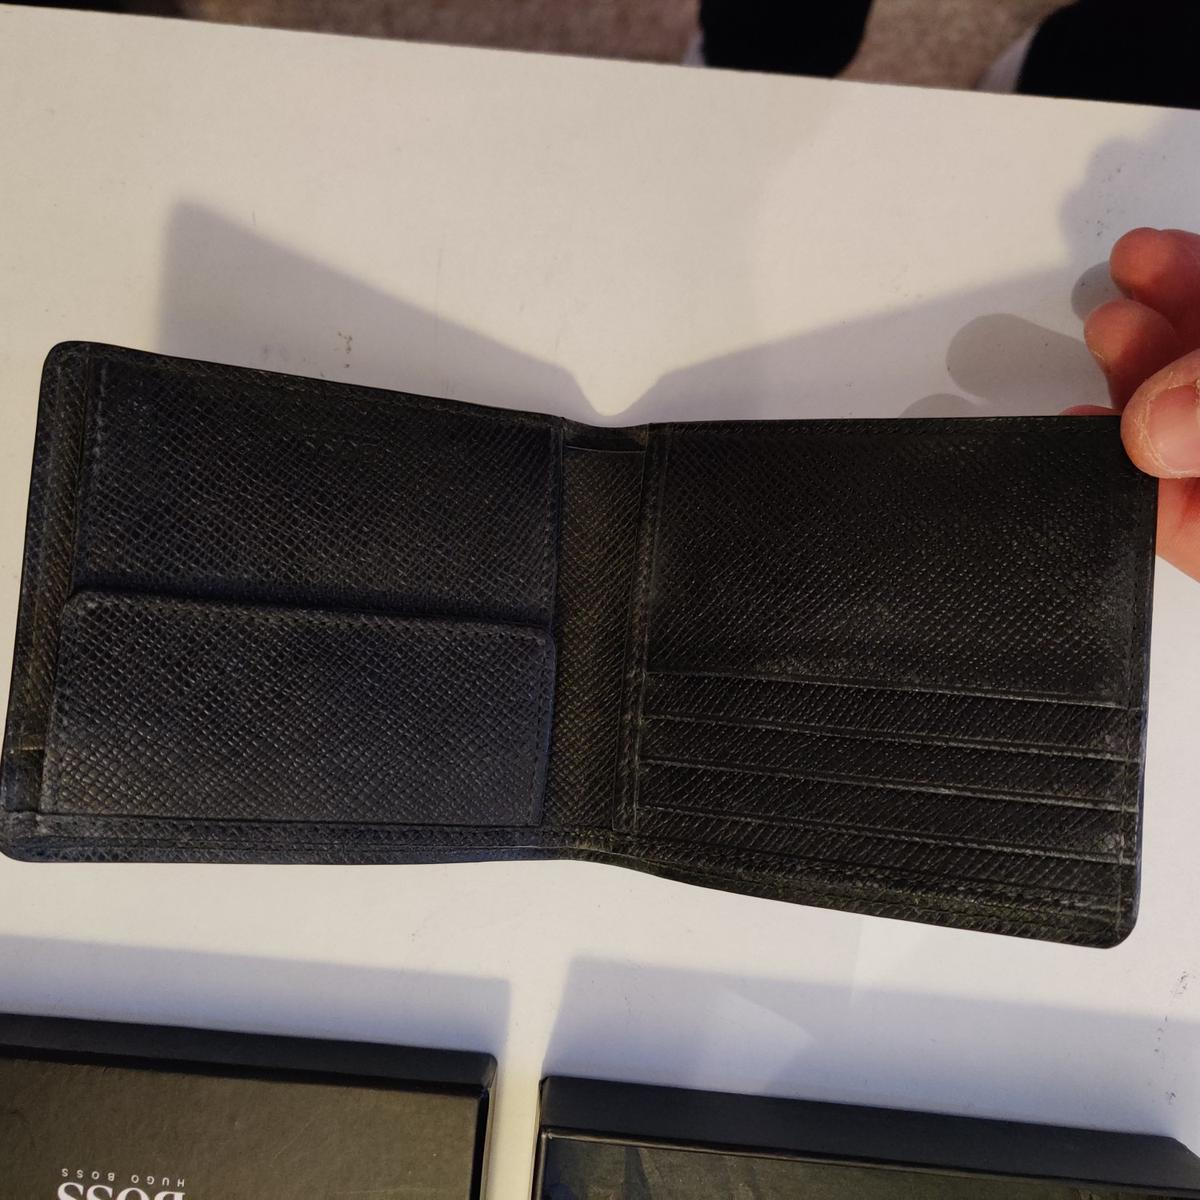 Striped leather wallet. Untouched and still in its box. Selling for 130 in store.